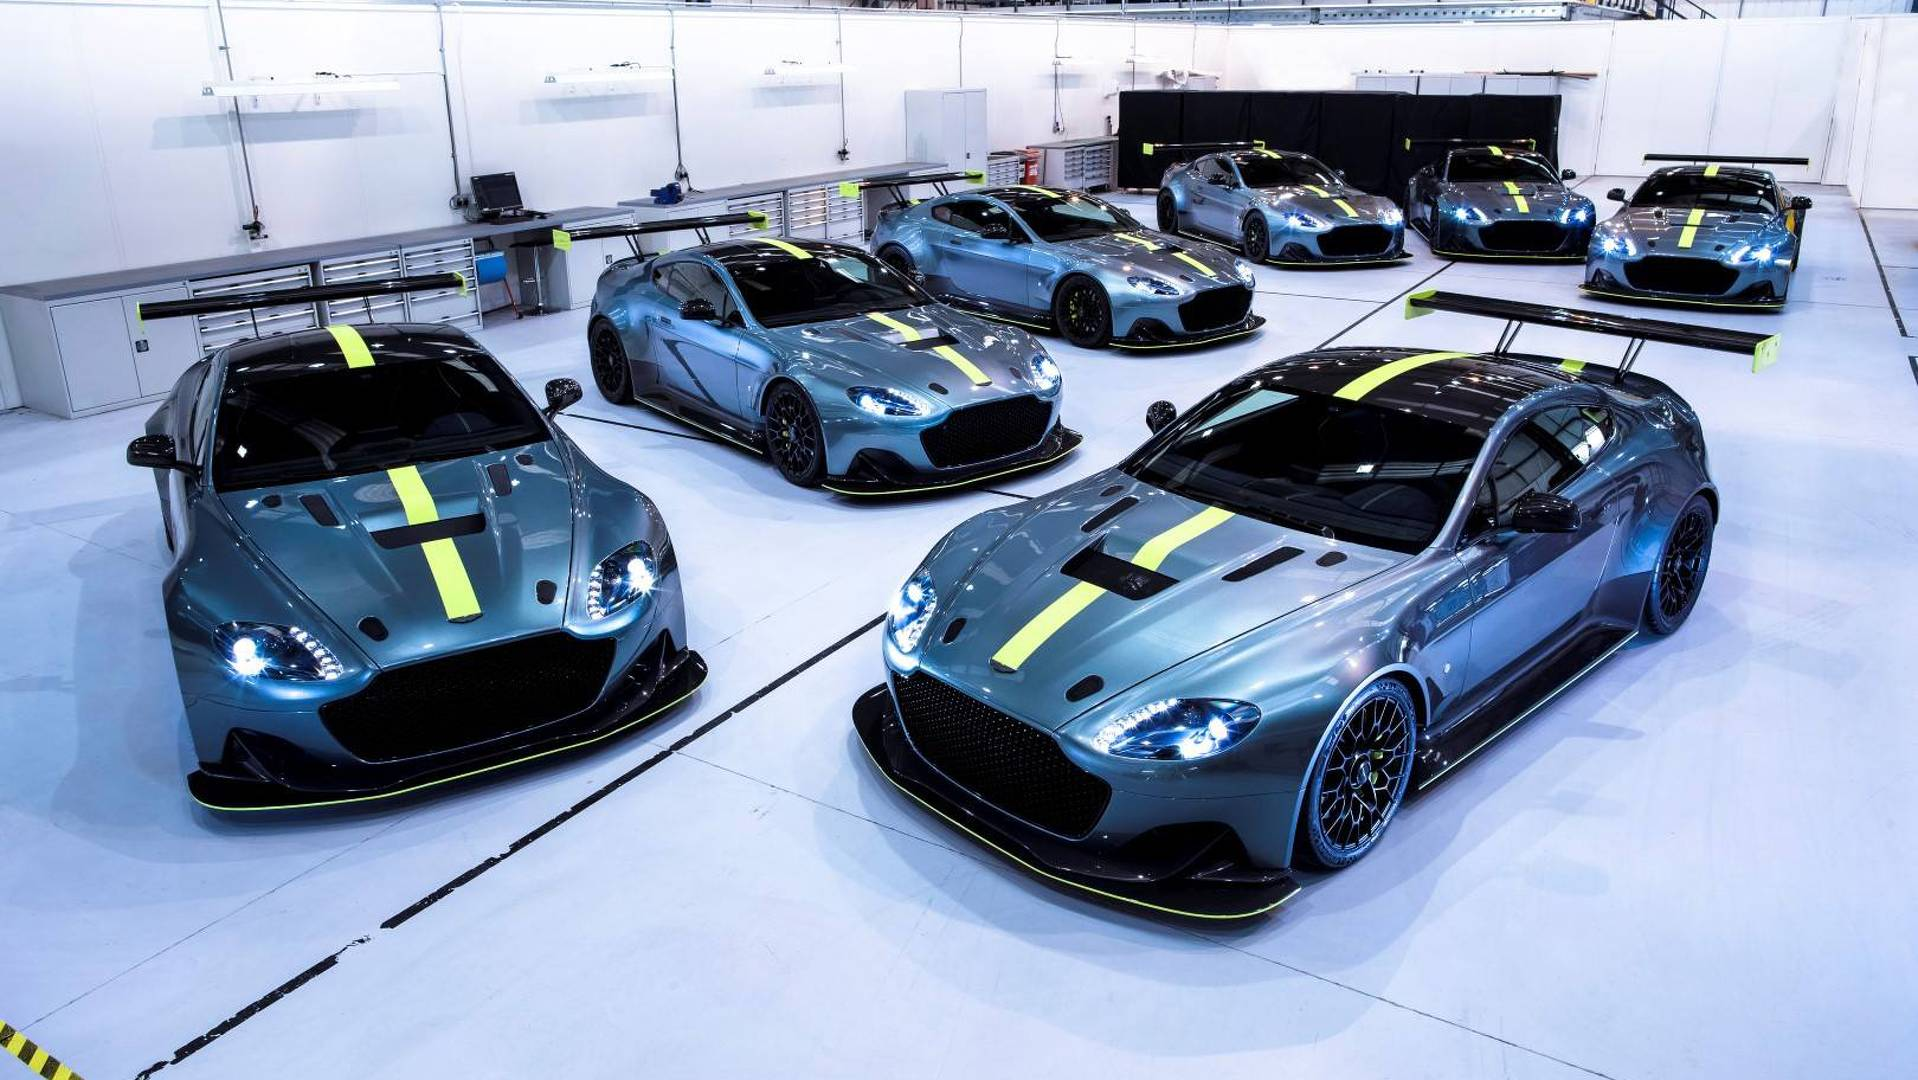 These Seven Unique Vantage Amr Pros Are Aston Martin Paradise